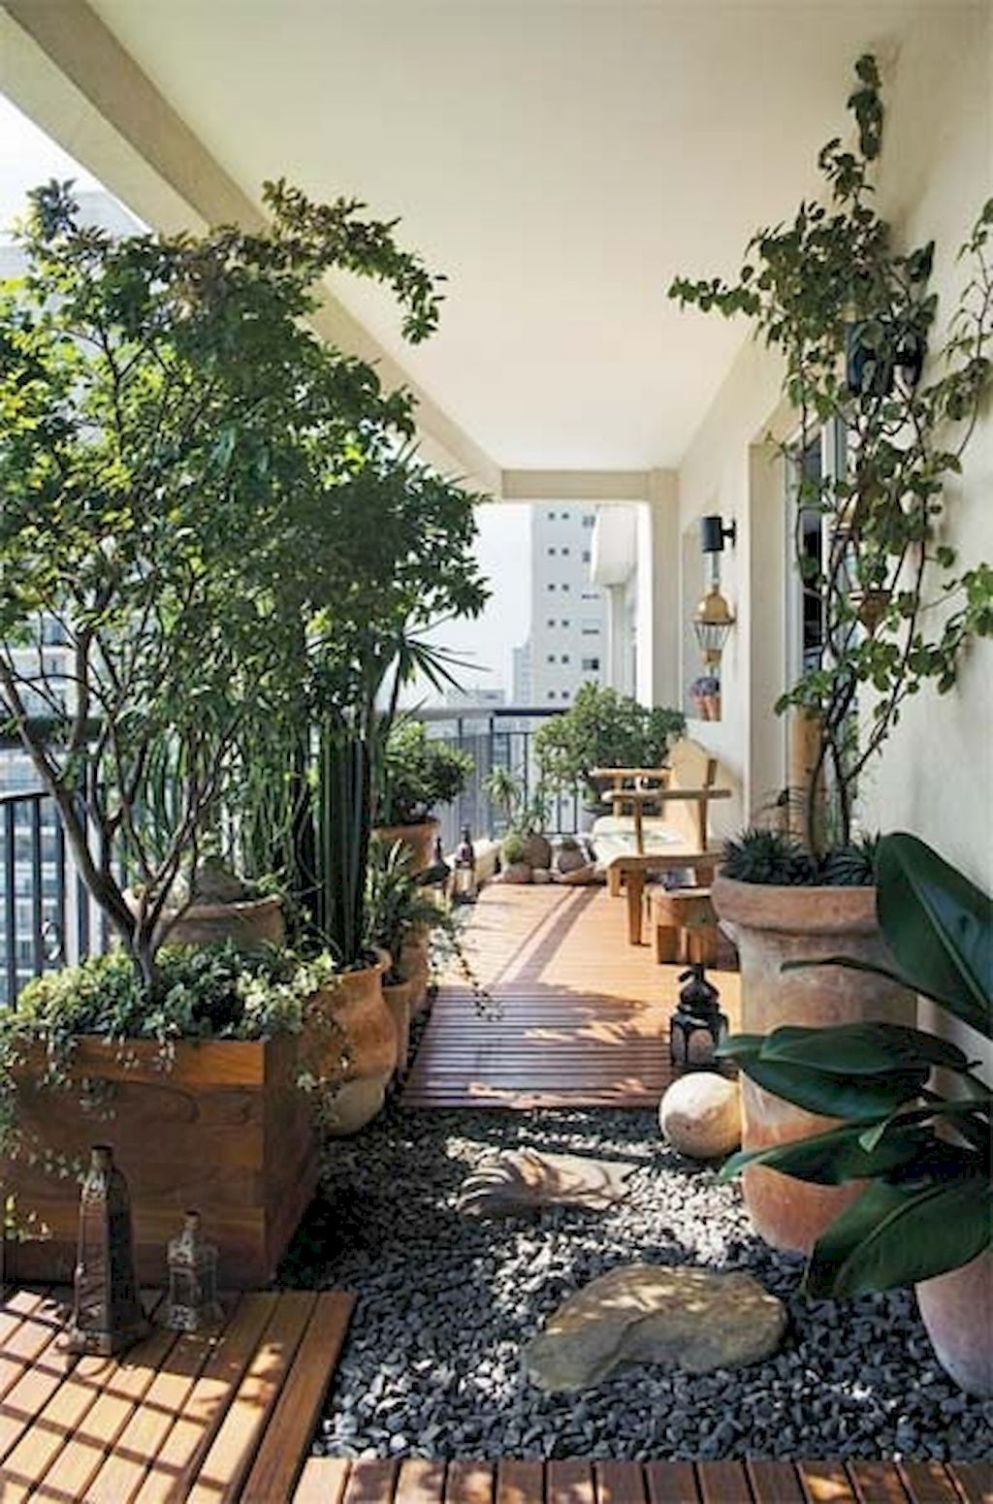 Cozy small balcony makeover ideas (12 | Patio garden, Balcony ..